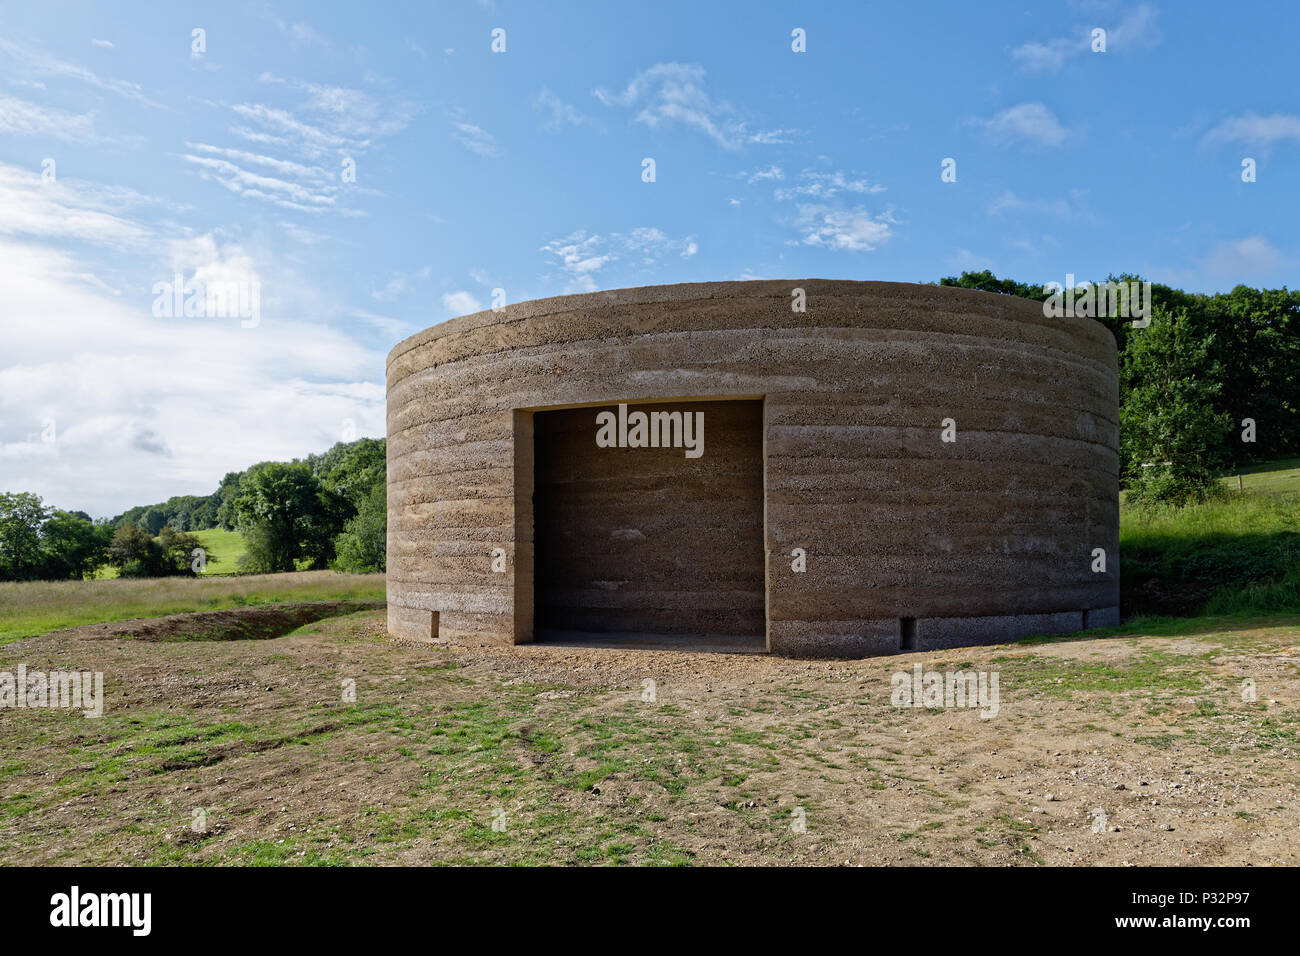 Sunday 17th June 2018. Runnymede Meadows, Surrey, England.'Writ In Water' designed by artist Mark Wallinger to 'reflect upon the founding principles of democracy'. Created in collaboration with Studio Octopi it opened to the public yesterday on16th June & sits on public 'land held in common' at Runnymede by the National Trust. Credit: wyrdlight/Alamy Live News - Stock Image